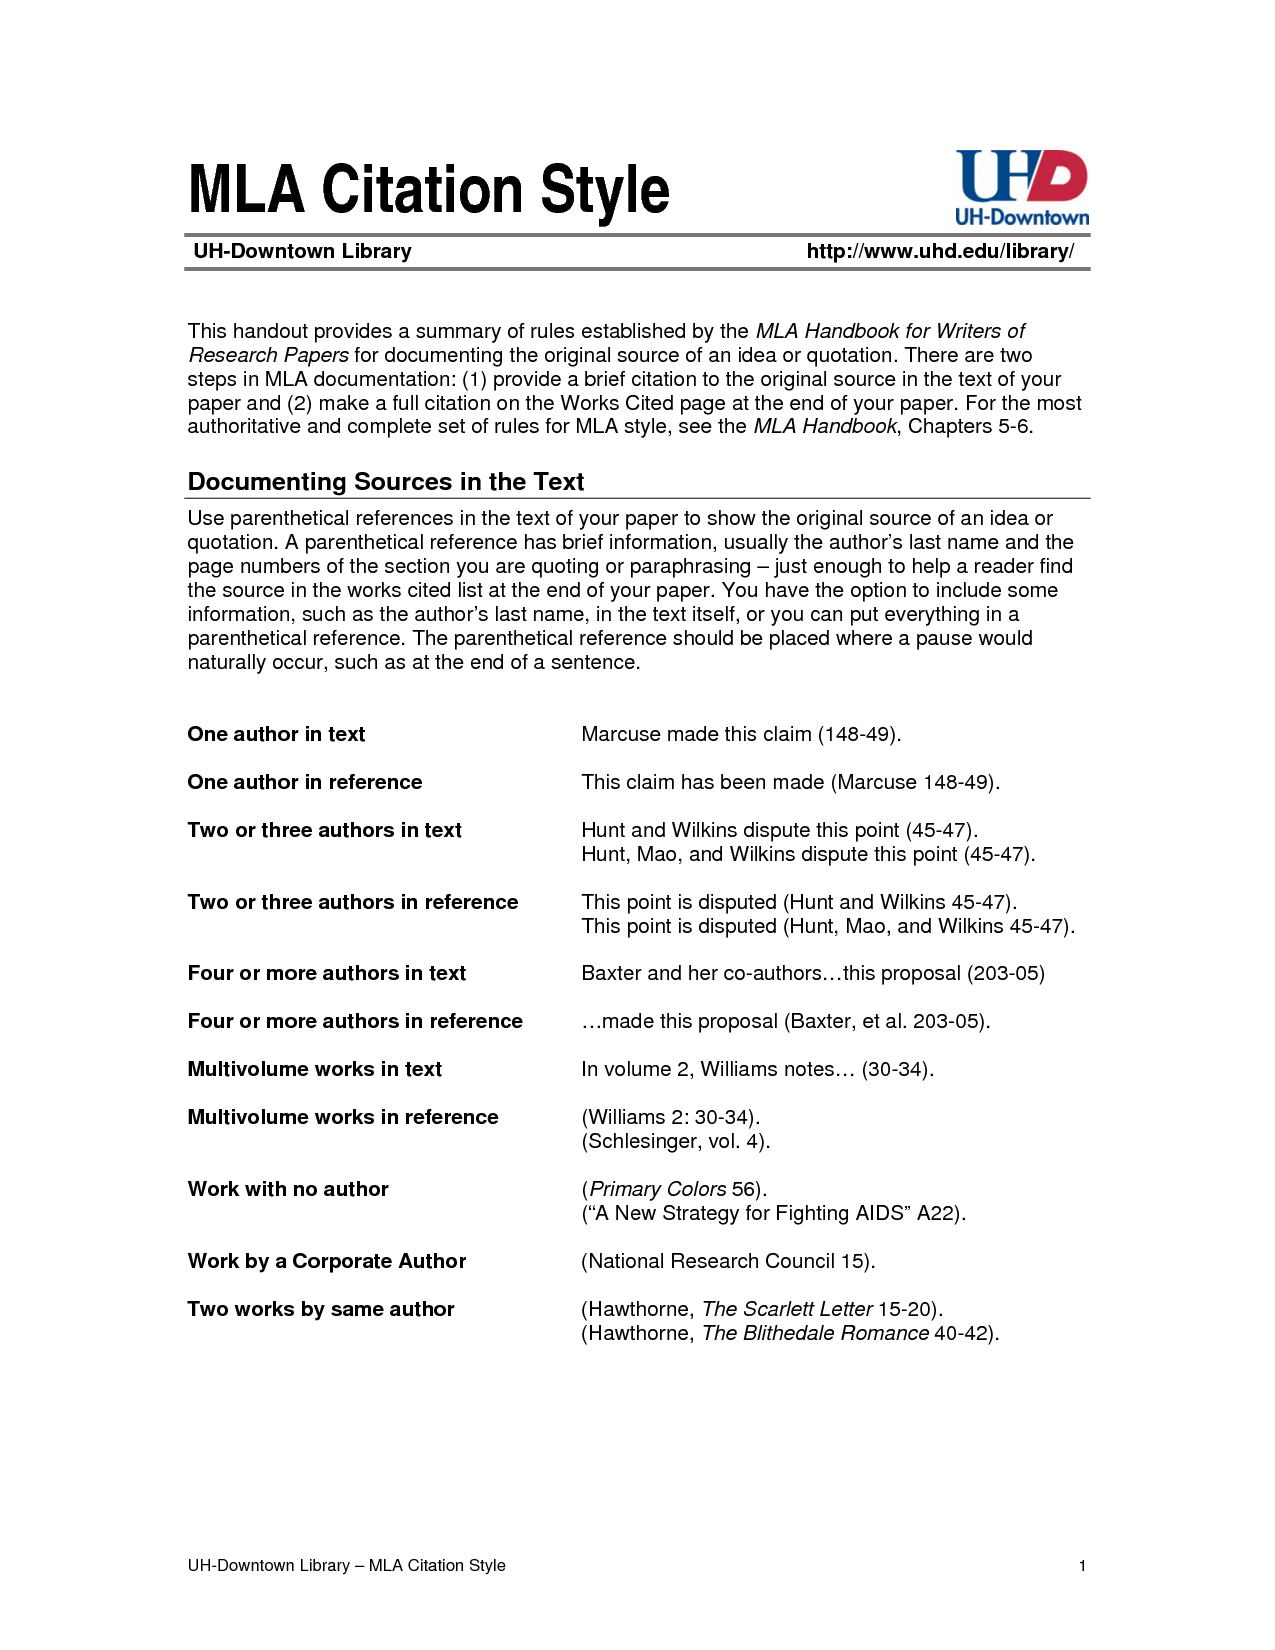 how to cite references in mla format Mla style citations, 7th ed (modern languages association) this guide provides basic guidelines and examples for citing sources using the mla handbook for writers of.